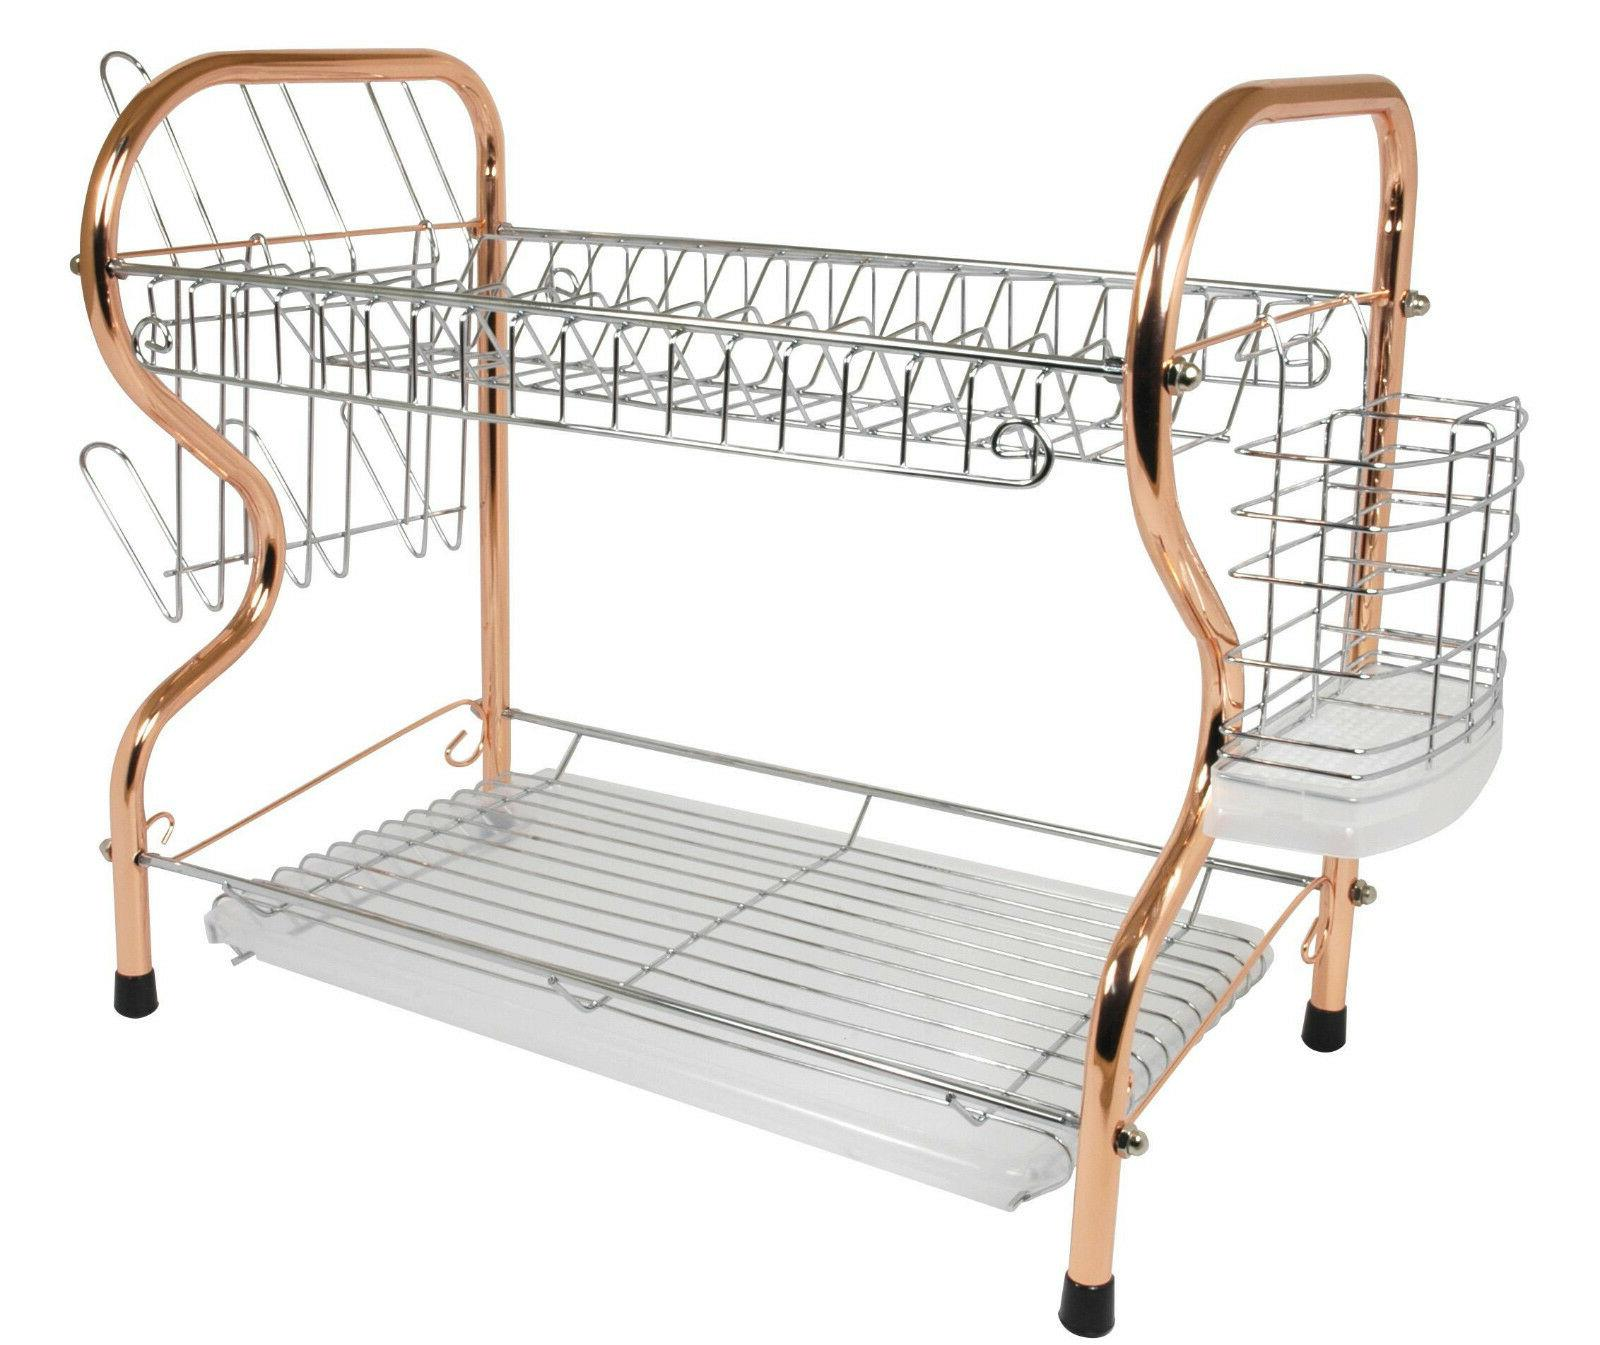 Kitchen Chrome Dish Drying Rack 2 Tier with Utensil Holder,